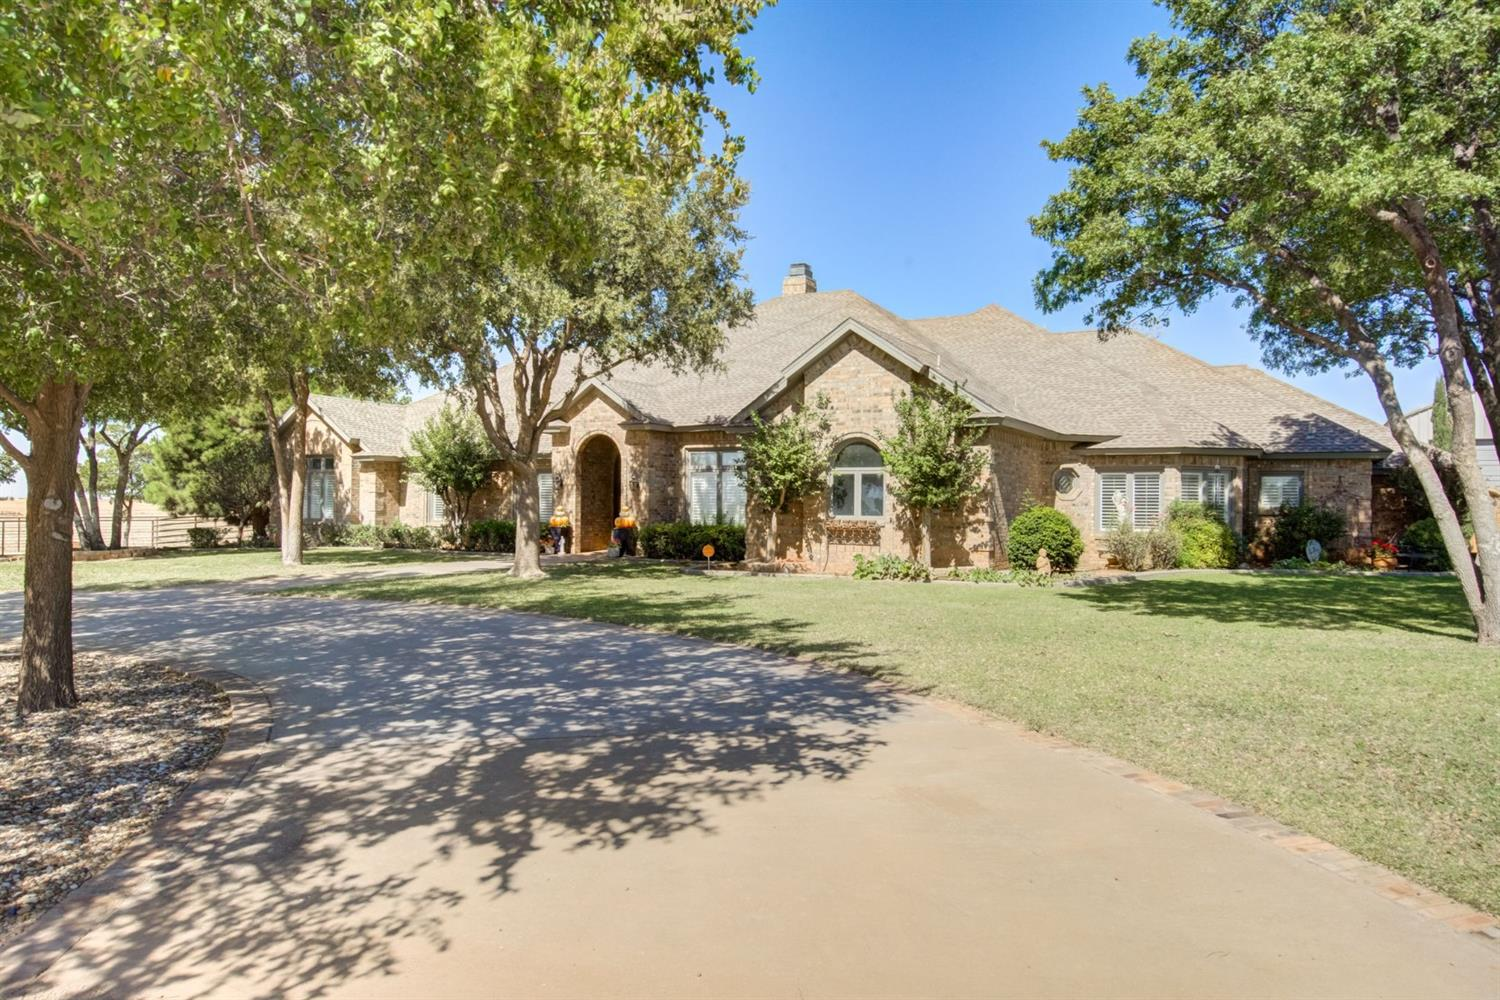 This beautiful home in Buena Vista Estates is one of a kind. On more than one acre, you'll find 2 horse stalls, a large barn with a full, separate apartment, and views that will take your breath away. This house features gorgeous hardwood floors, granite, and upscale accents. The Master Suite opens out to your private patio, and the bathroom is a dream come true - complete with separate shower and soaking tub.There's also a dedicated office space, perfect for working from home. Entertaining will be a breeze with the perfect-size wet bar off the patio, and a second living area/game room/theatre room upstairs. Custom built-ins, crown molding, two fireplaces, surround sound, prep sink in kitchen, and all the extras are found here. Schedule your exclusive showing of this house today.